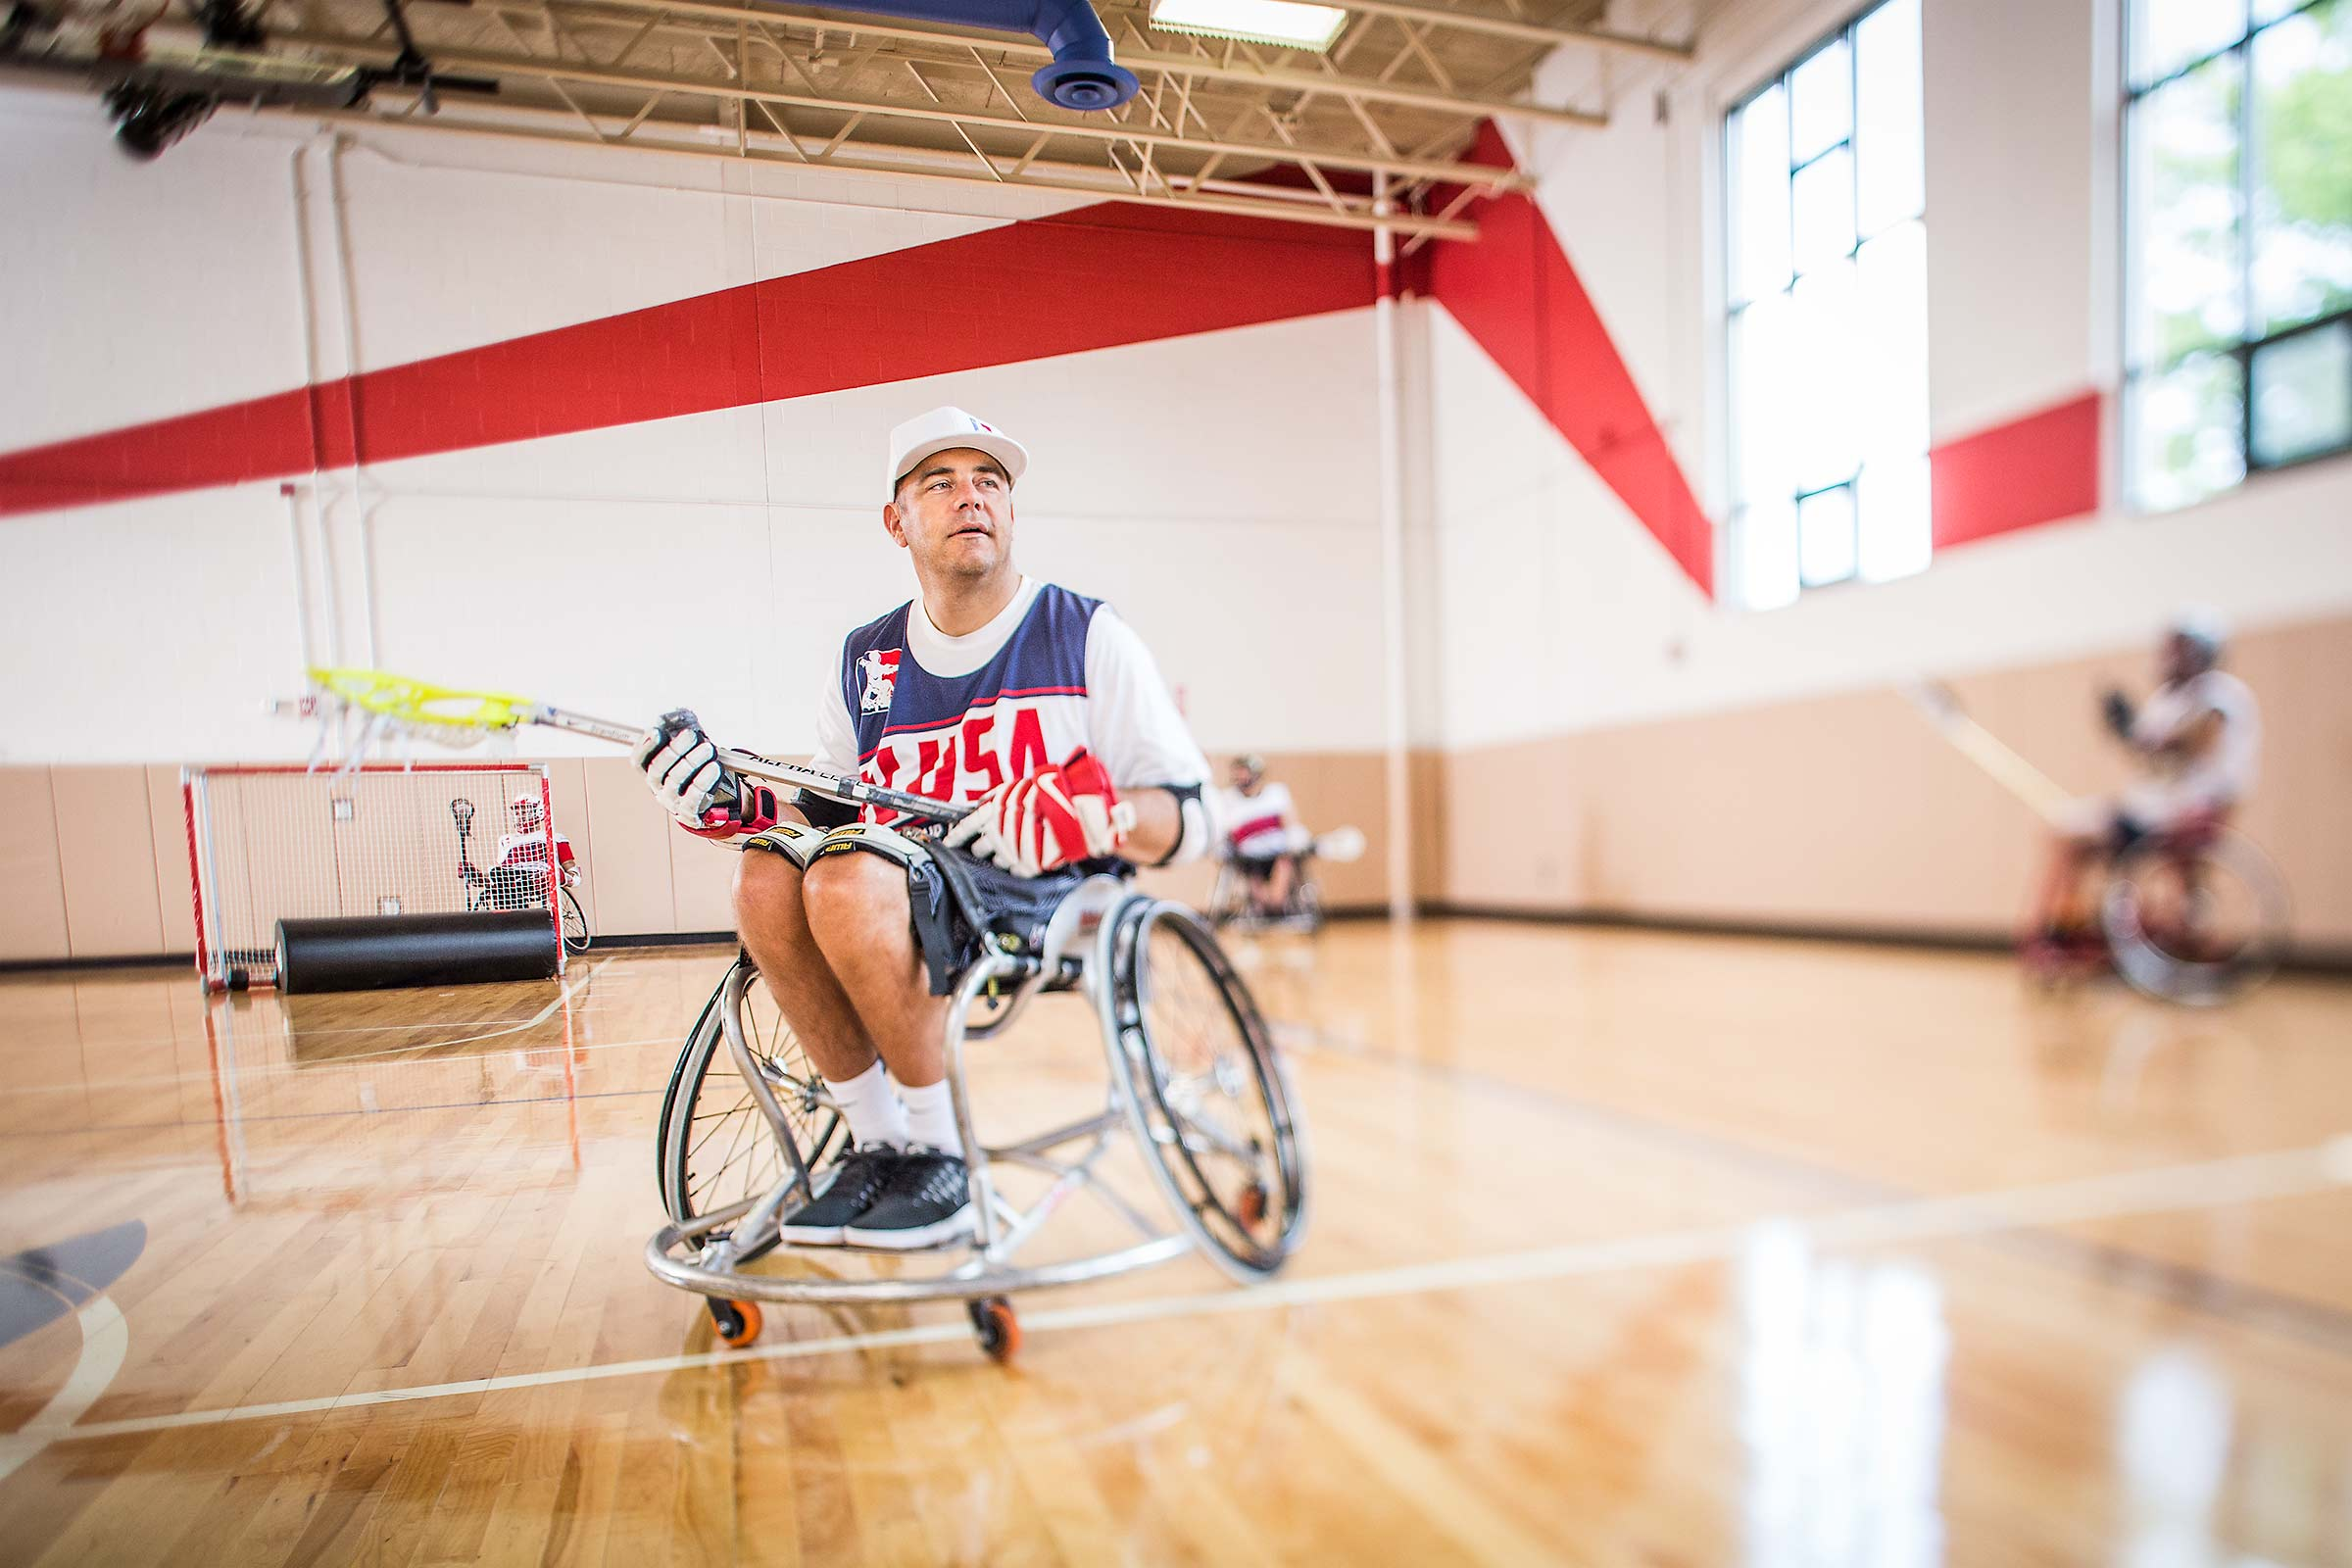 Wheelchair lacrosse founder throwing ball on an indoor court in Connecticut